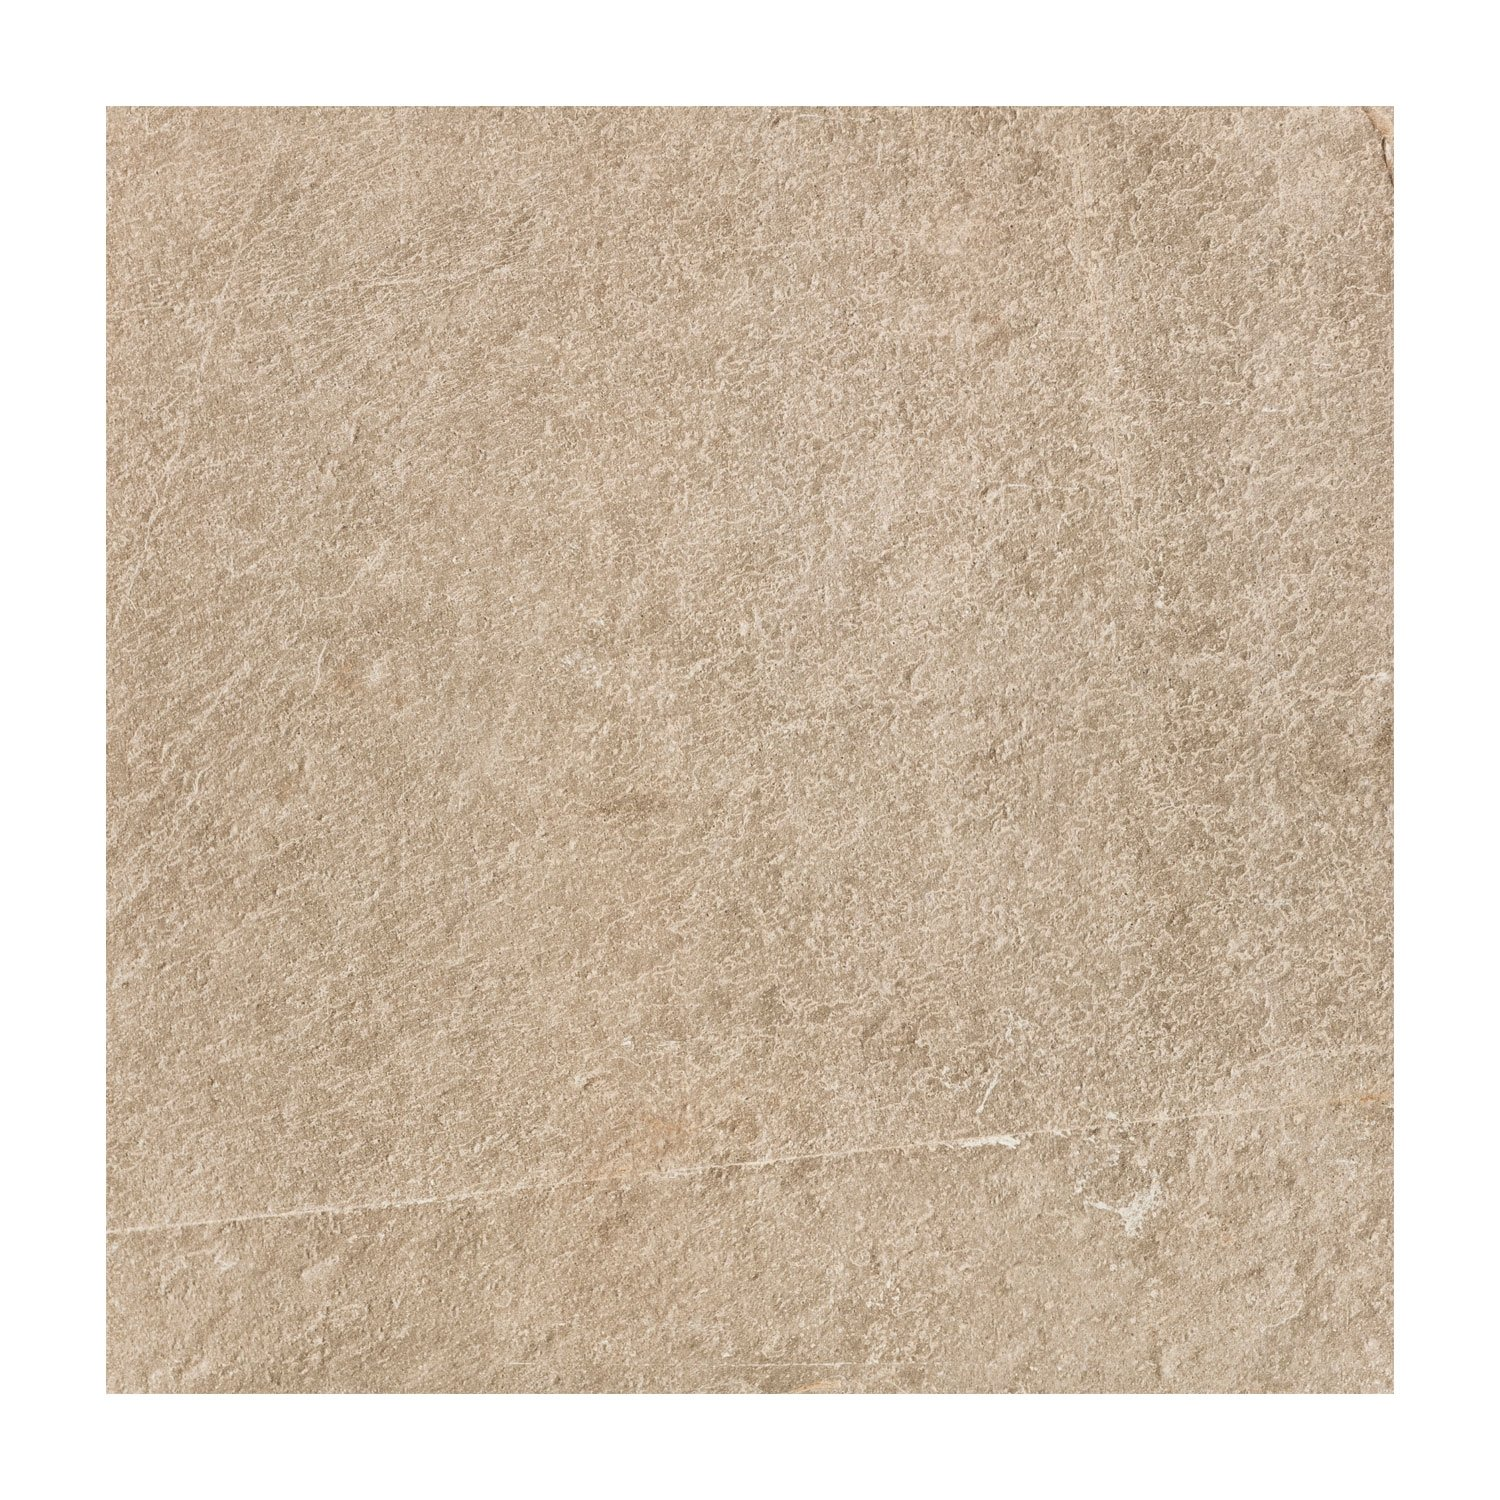 RAK Shine Stone Porcelain Tile - 600mm H x 600mm W - Dark Beige (Box of 4)